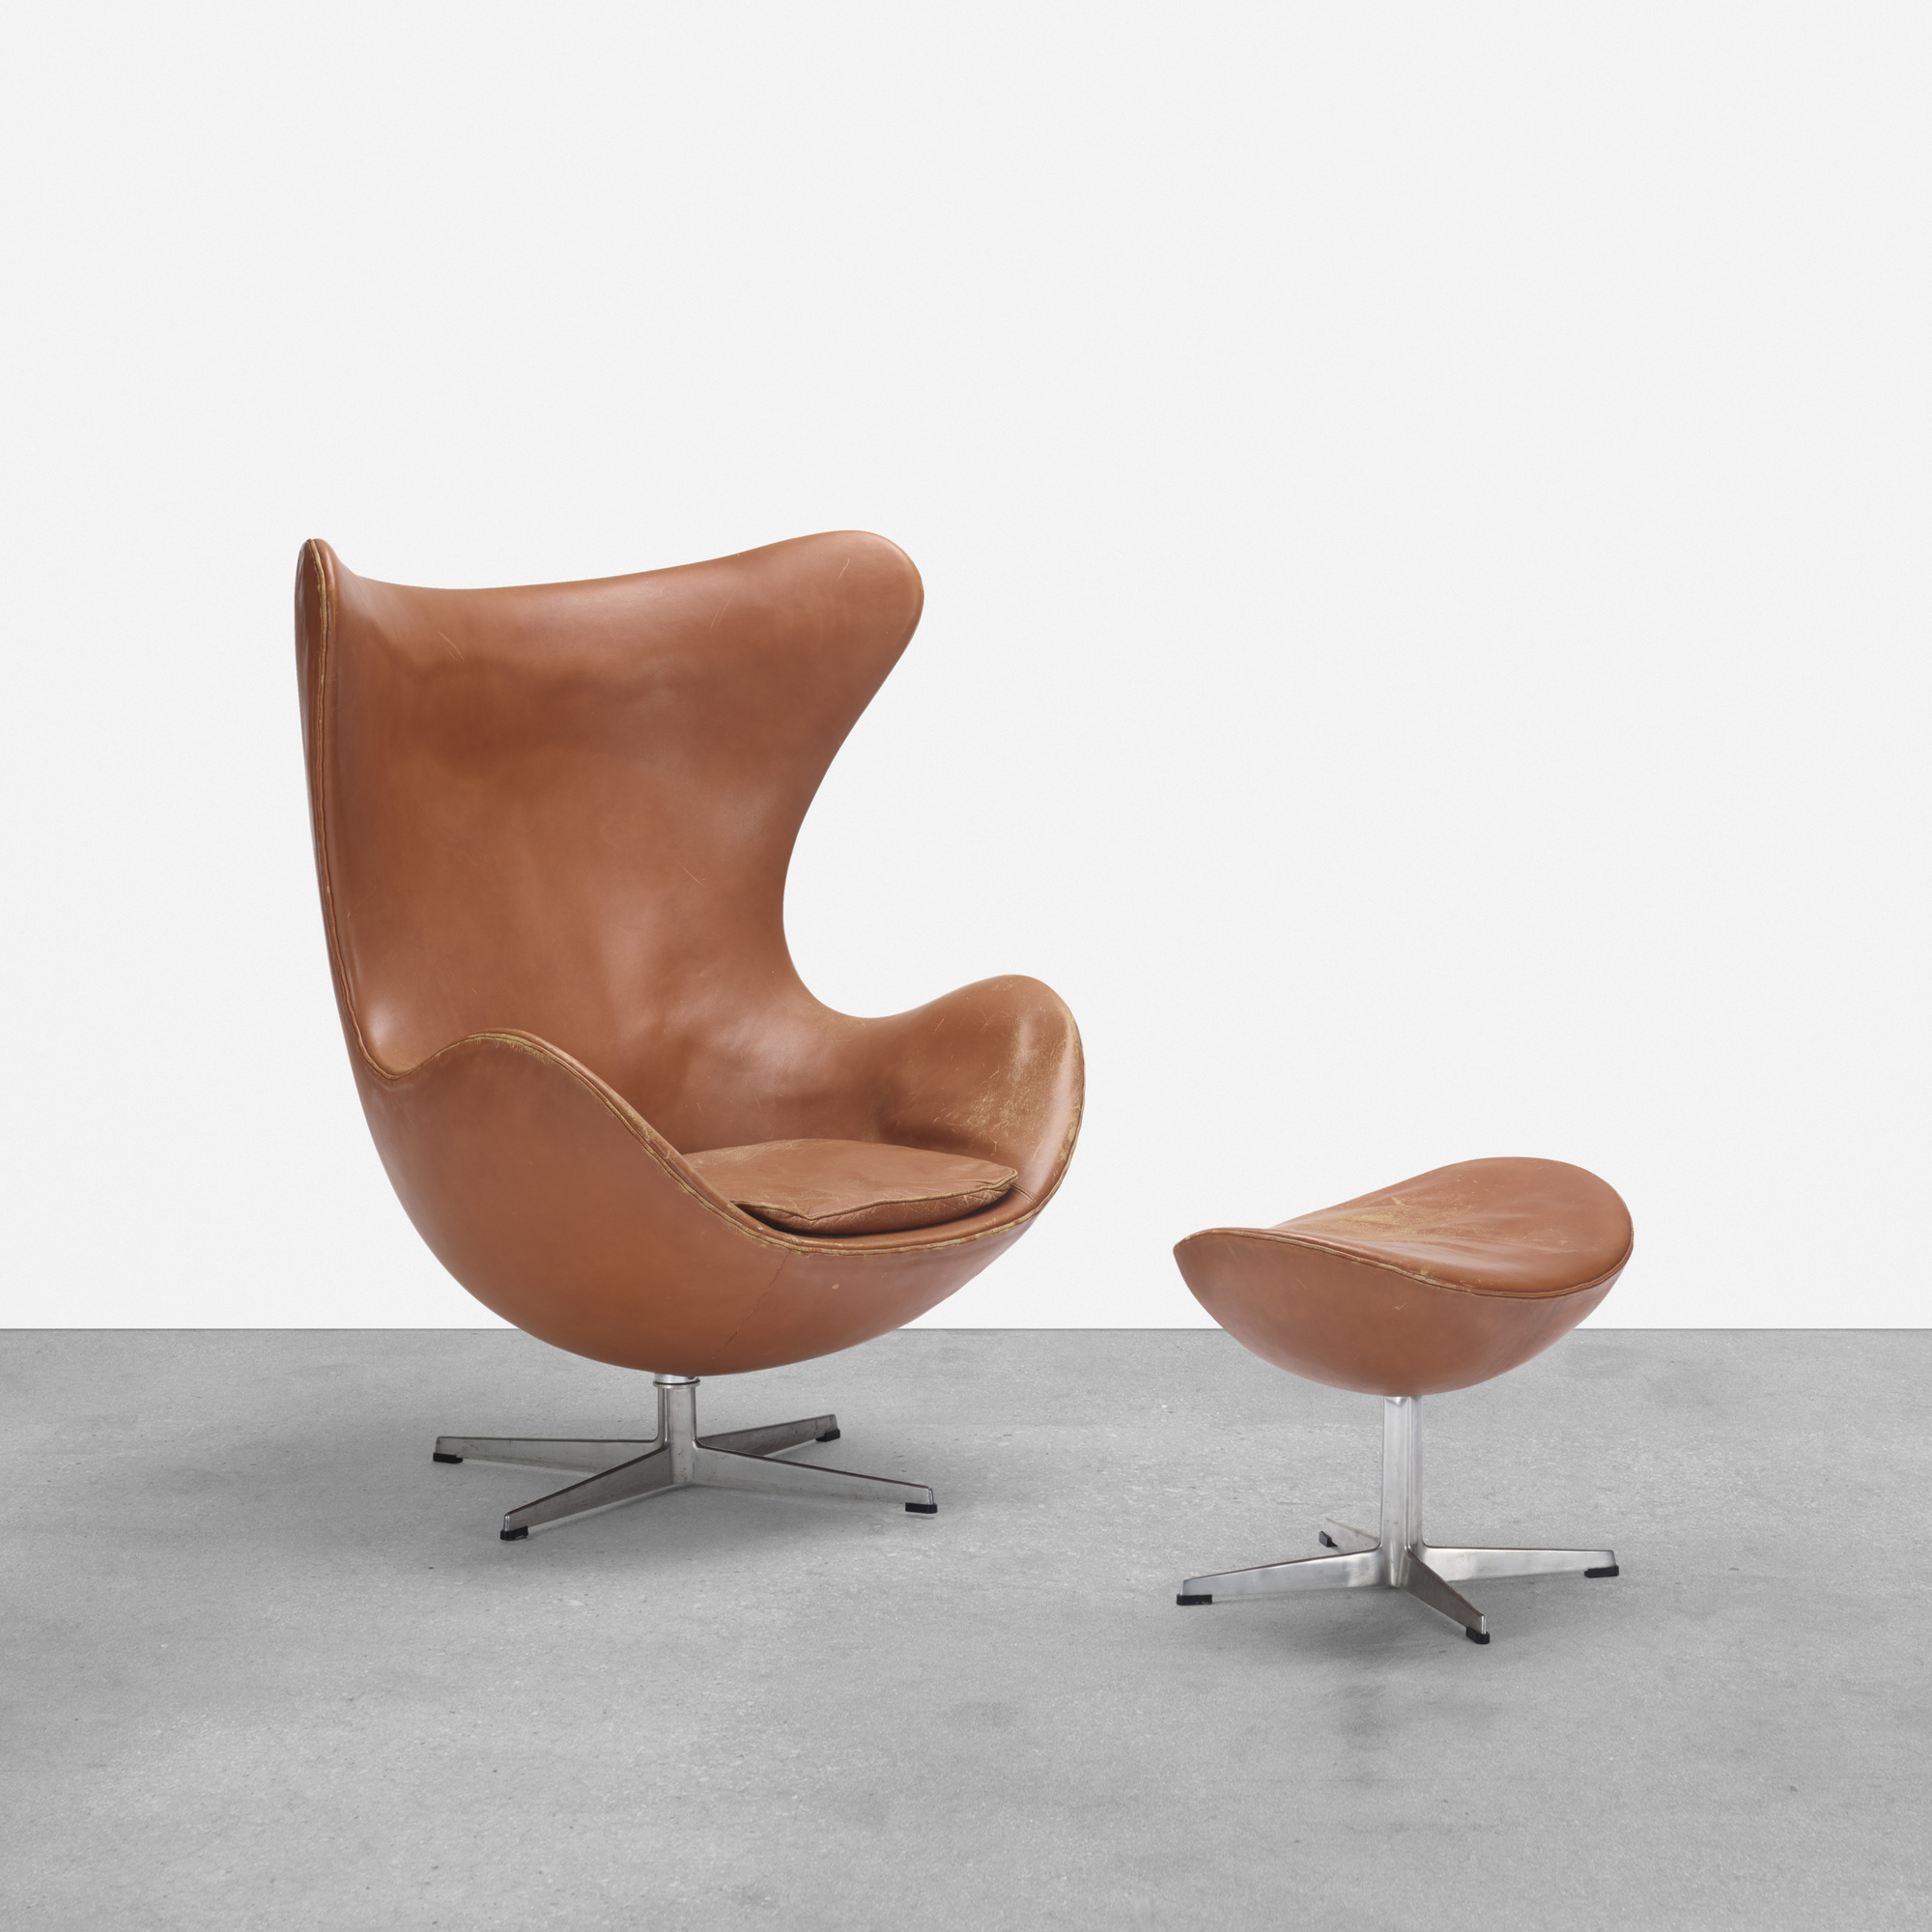 163: Arne Jacobsen / Egg chair and ottoman (1 of 3)